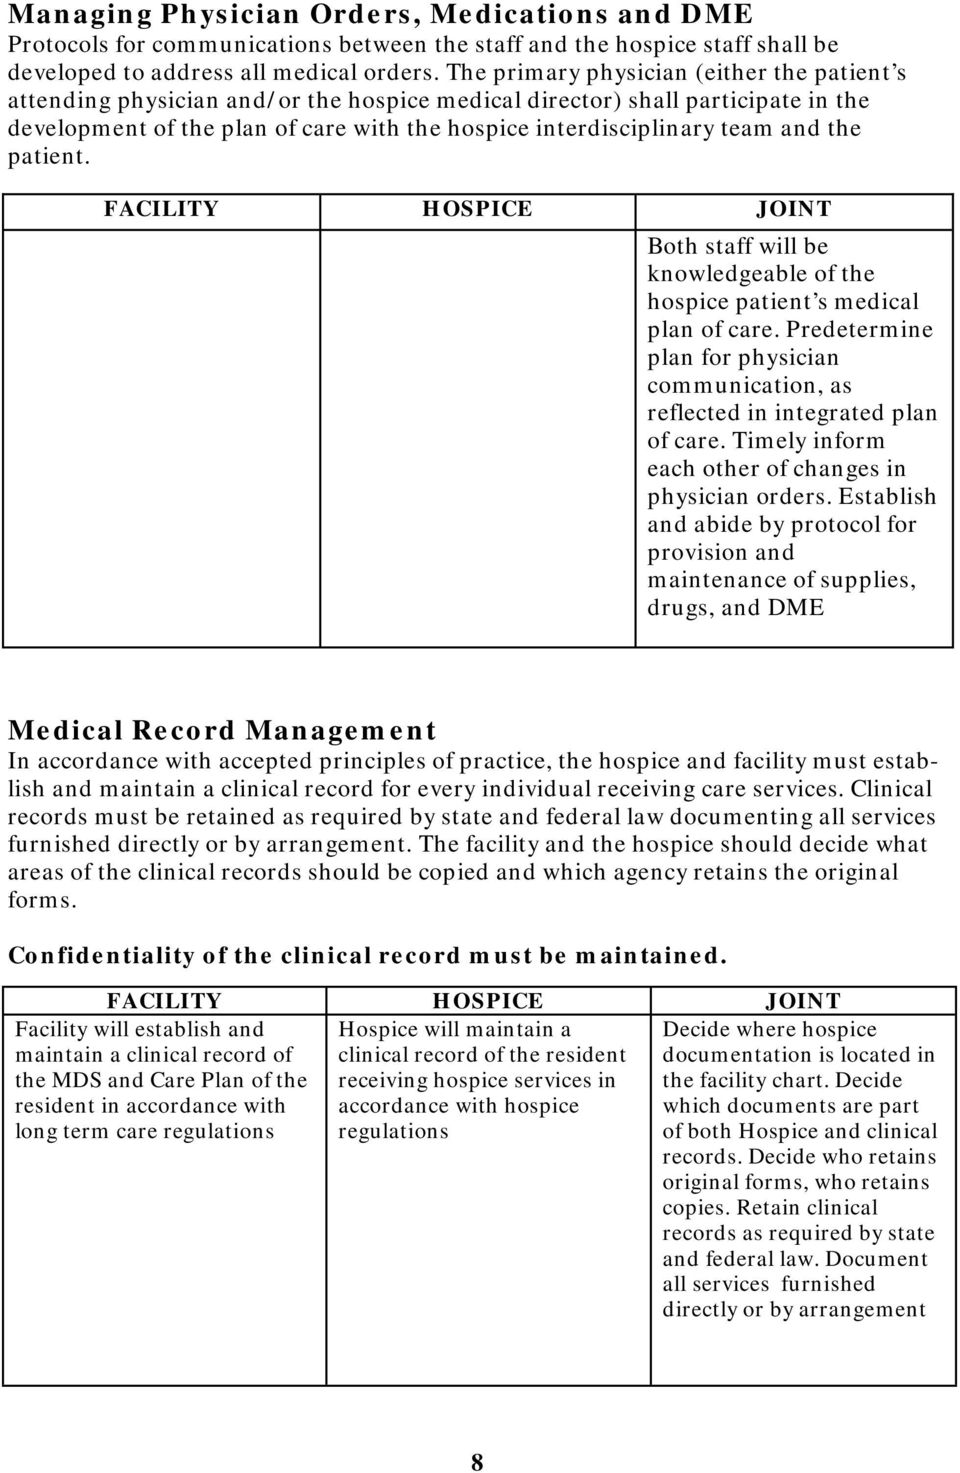 Hospice Forms For Documentation